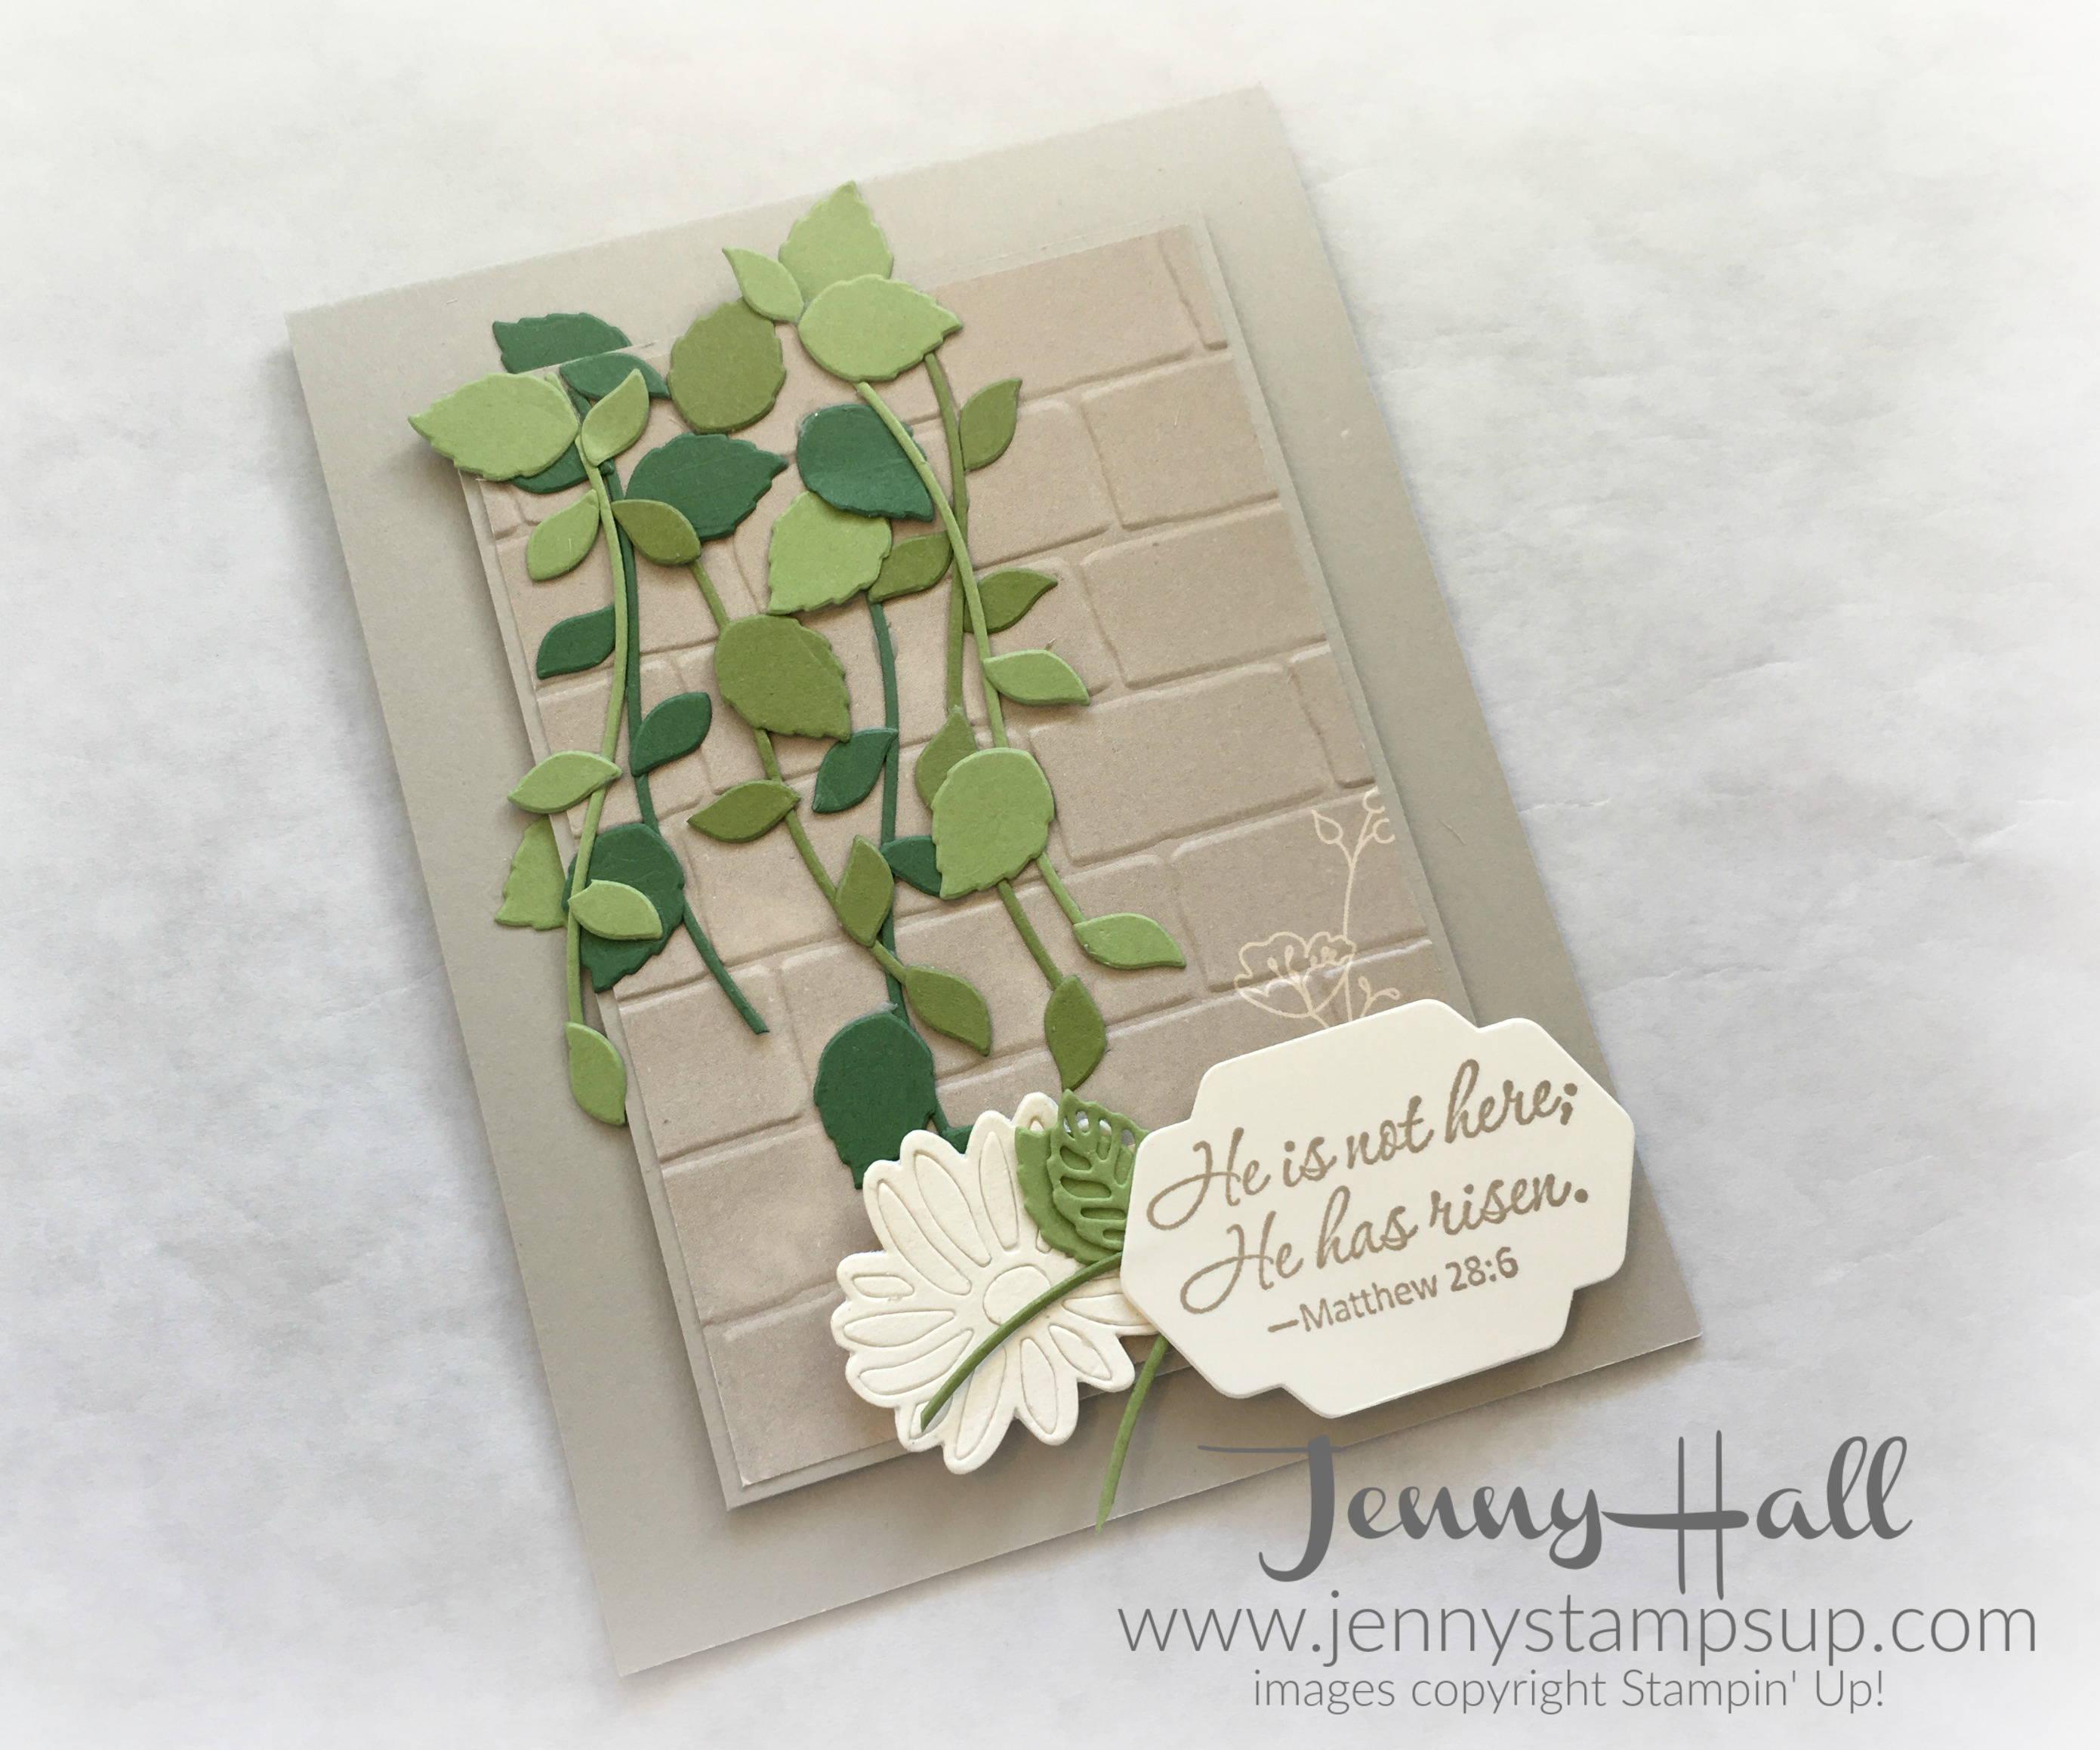 Easter Greenery card by Jenny Hall www.jennystampsup.com